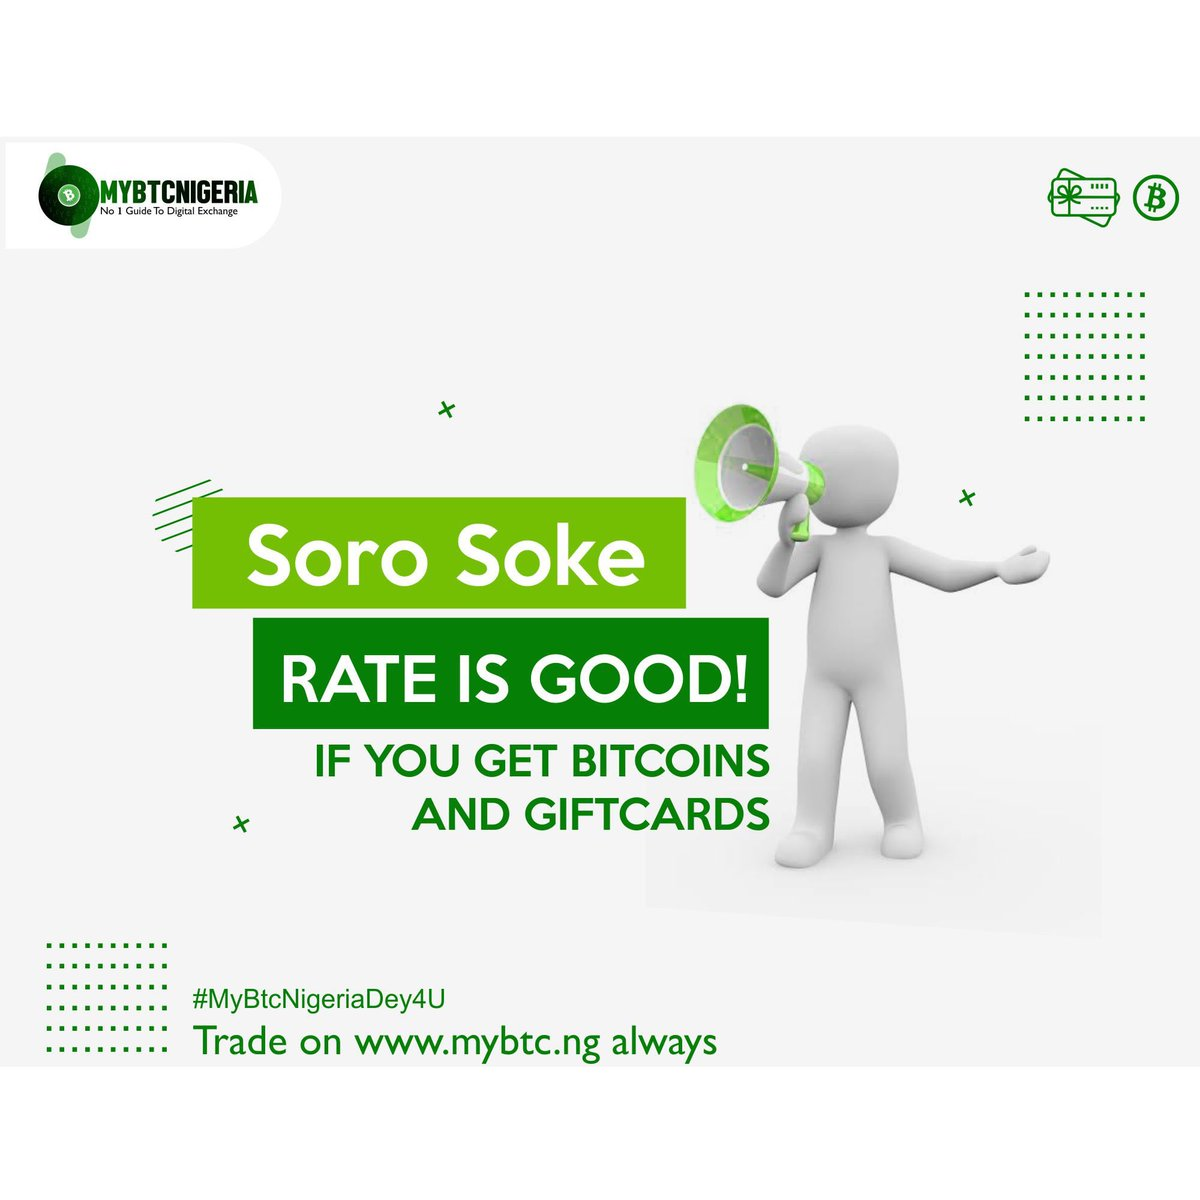 Oya sorosoke Rate is Good, if you get Bitcoin and Gift cards #MyBtcNigeriaDey4U . . Our referral promo is still on : REFER SOMEONE TO TRADE ON MYBTC.NG AND EARN 1 THOUSAND NAIRA #MyBtcNg #MyBtcNigeria we trade: BITCOIN,GIFTCARDS,YUAN AND ETHEREUM 24/7